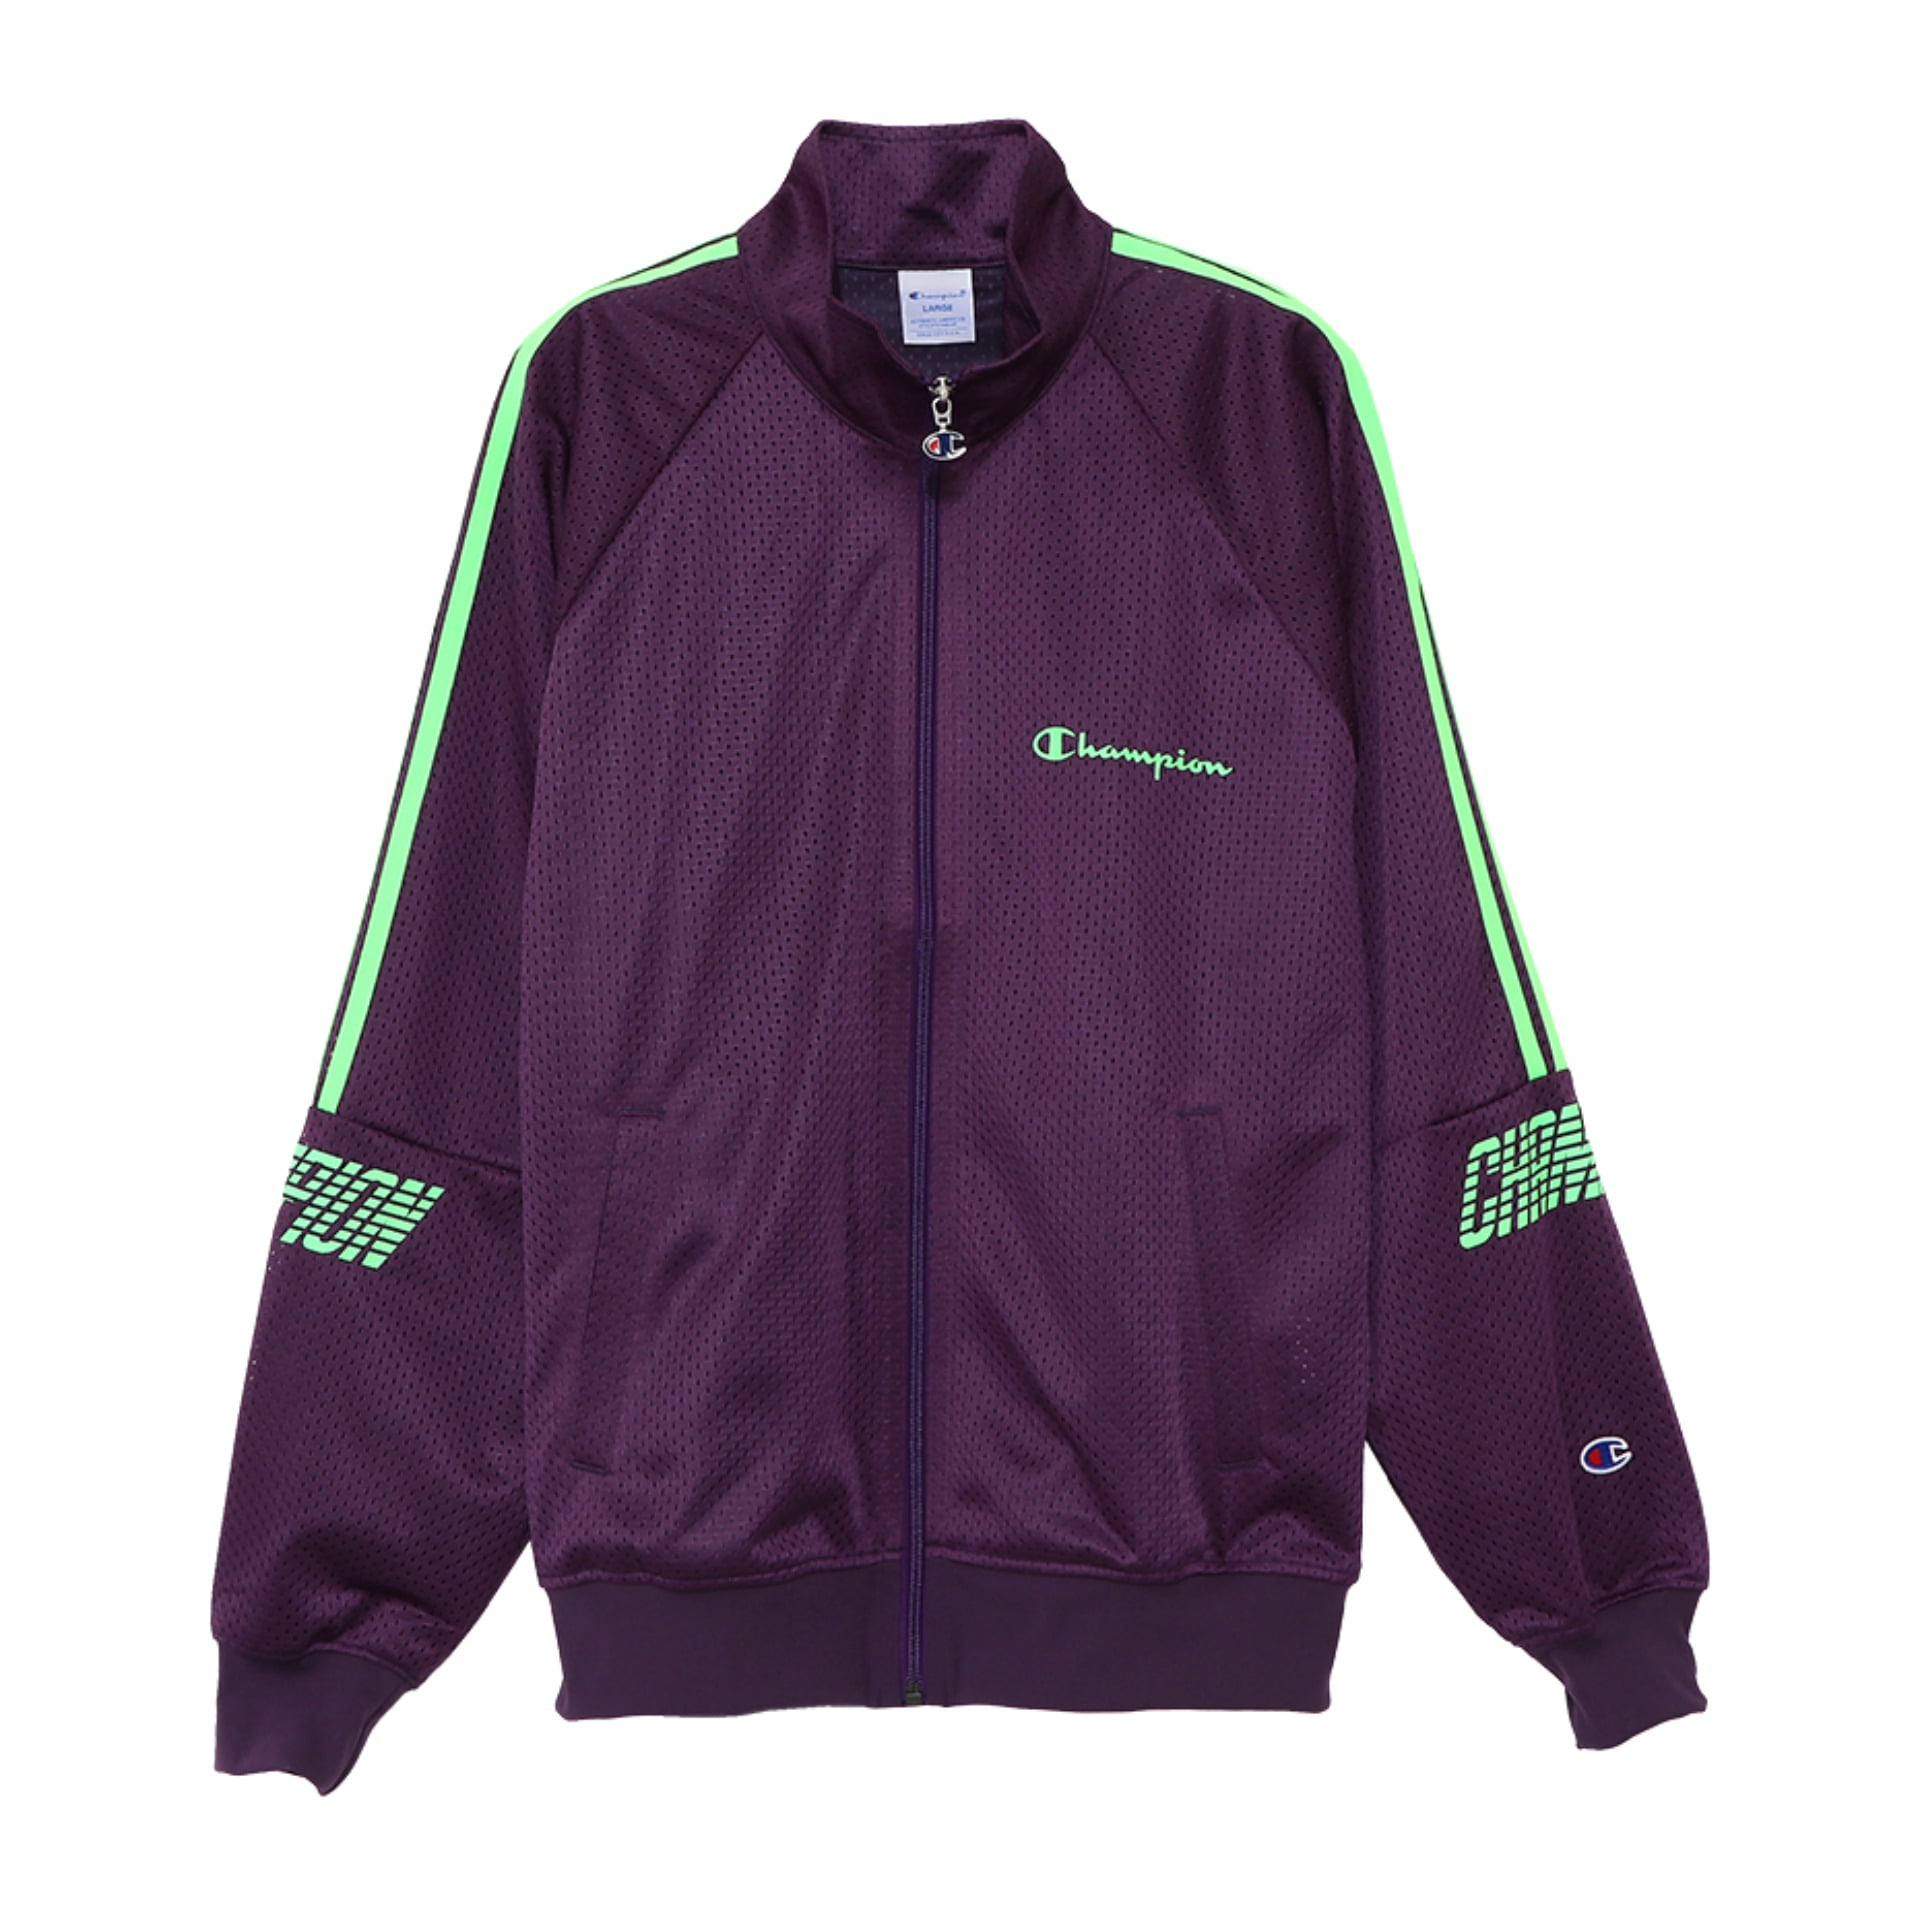 ACTION STYLE PULL ZIP-UP CHAMP MESH JACKET (Plum)